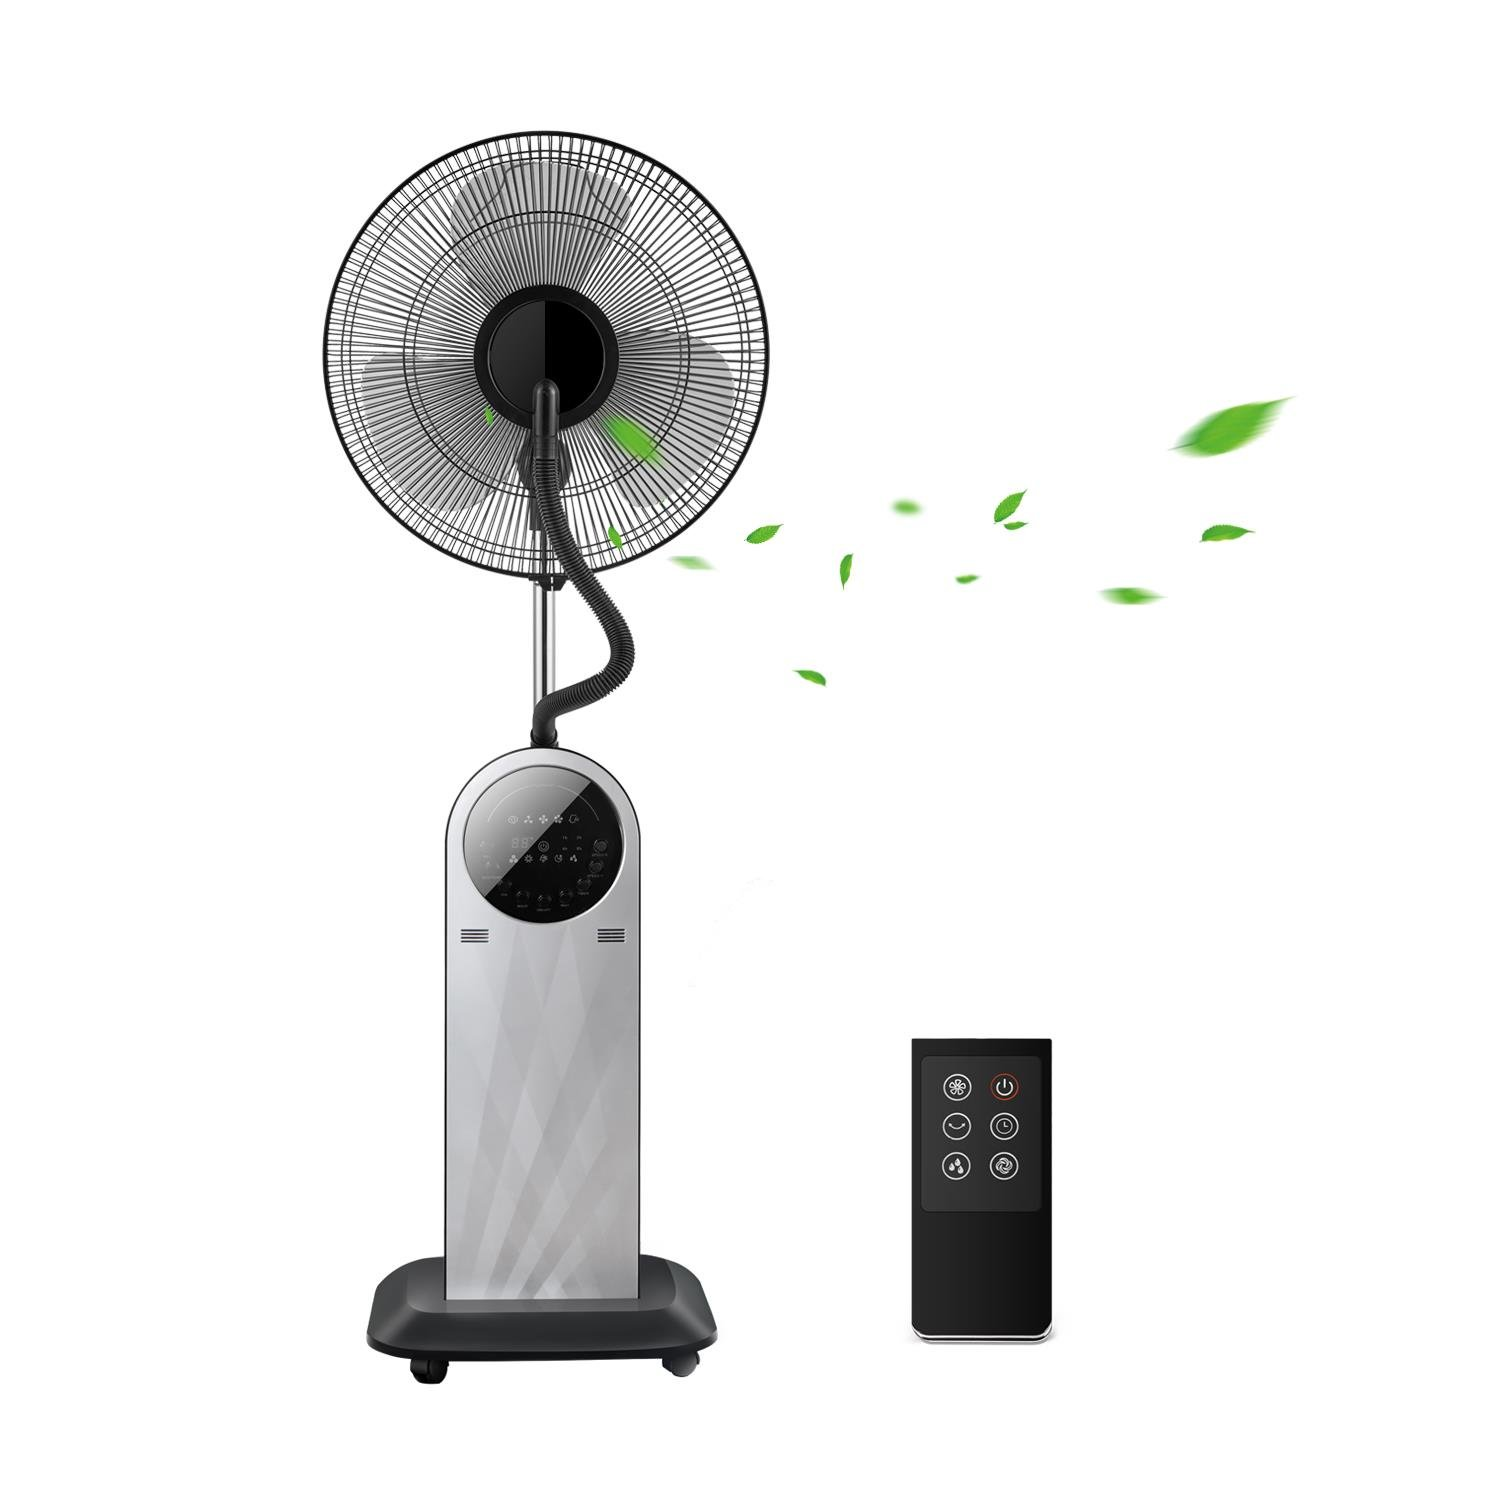 Aigostar Forest Mist 33JTU - Ventilatore a piantana. Funzione Umidificatore a E-ION. Display LED